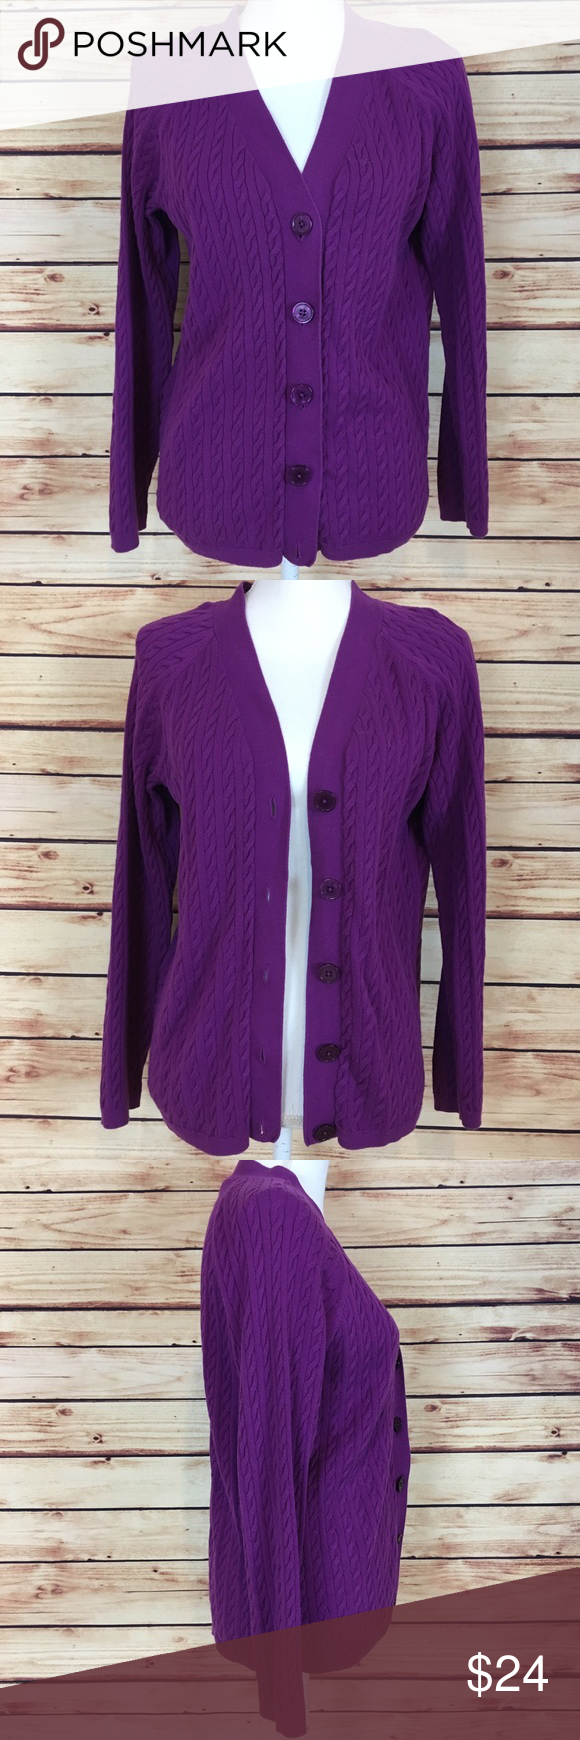 Talbots Purple Sweater Button Down Cable Knit | Talbots, Cable ...